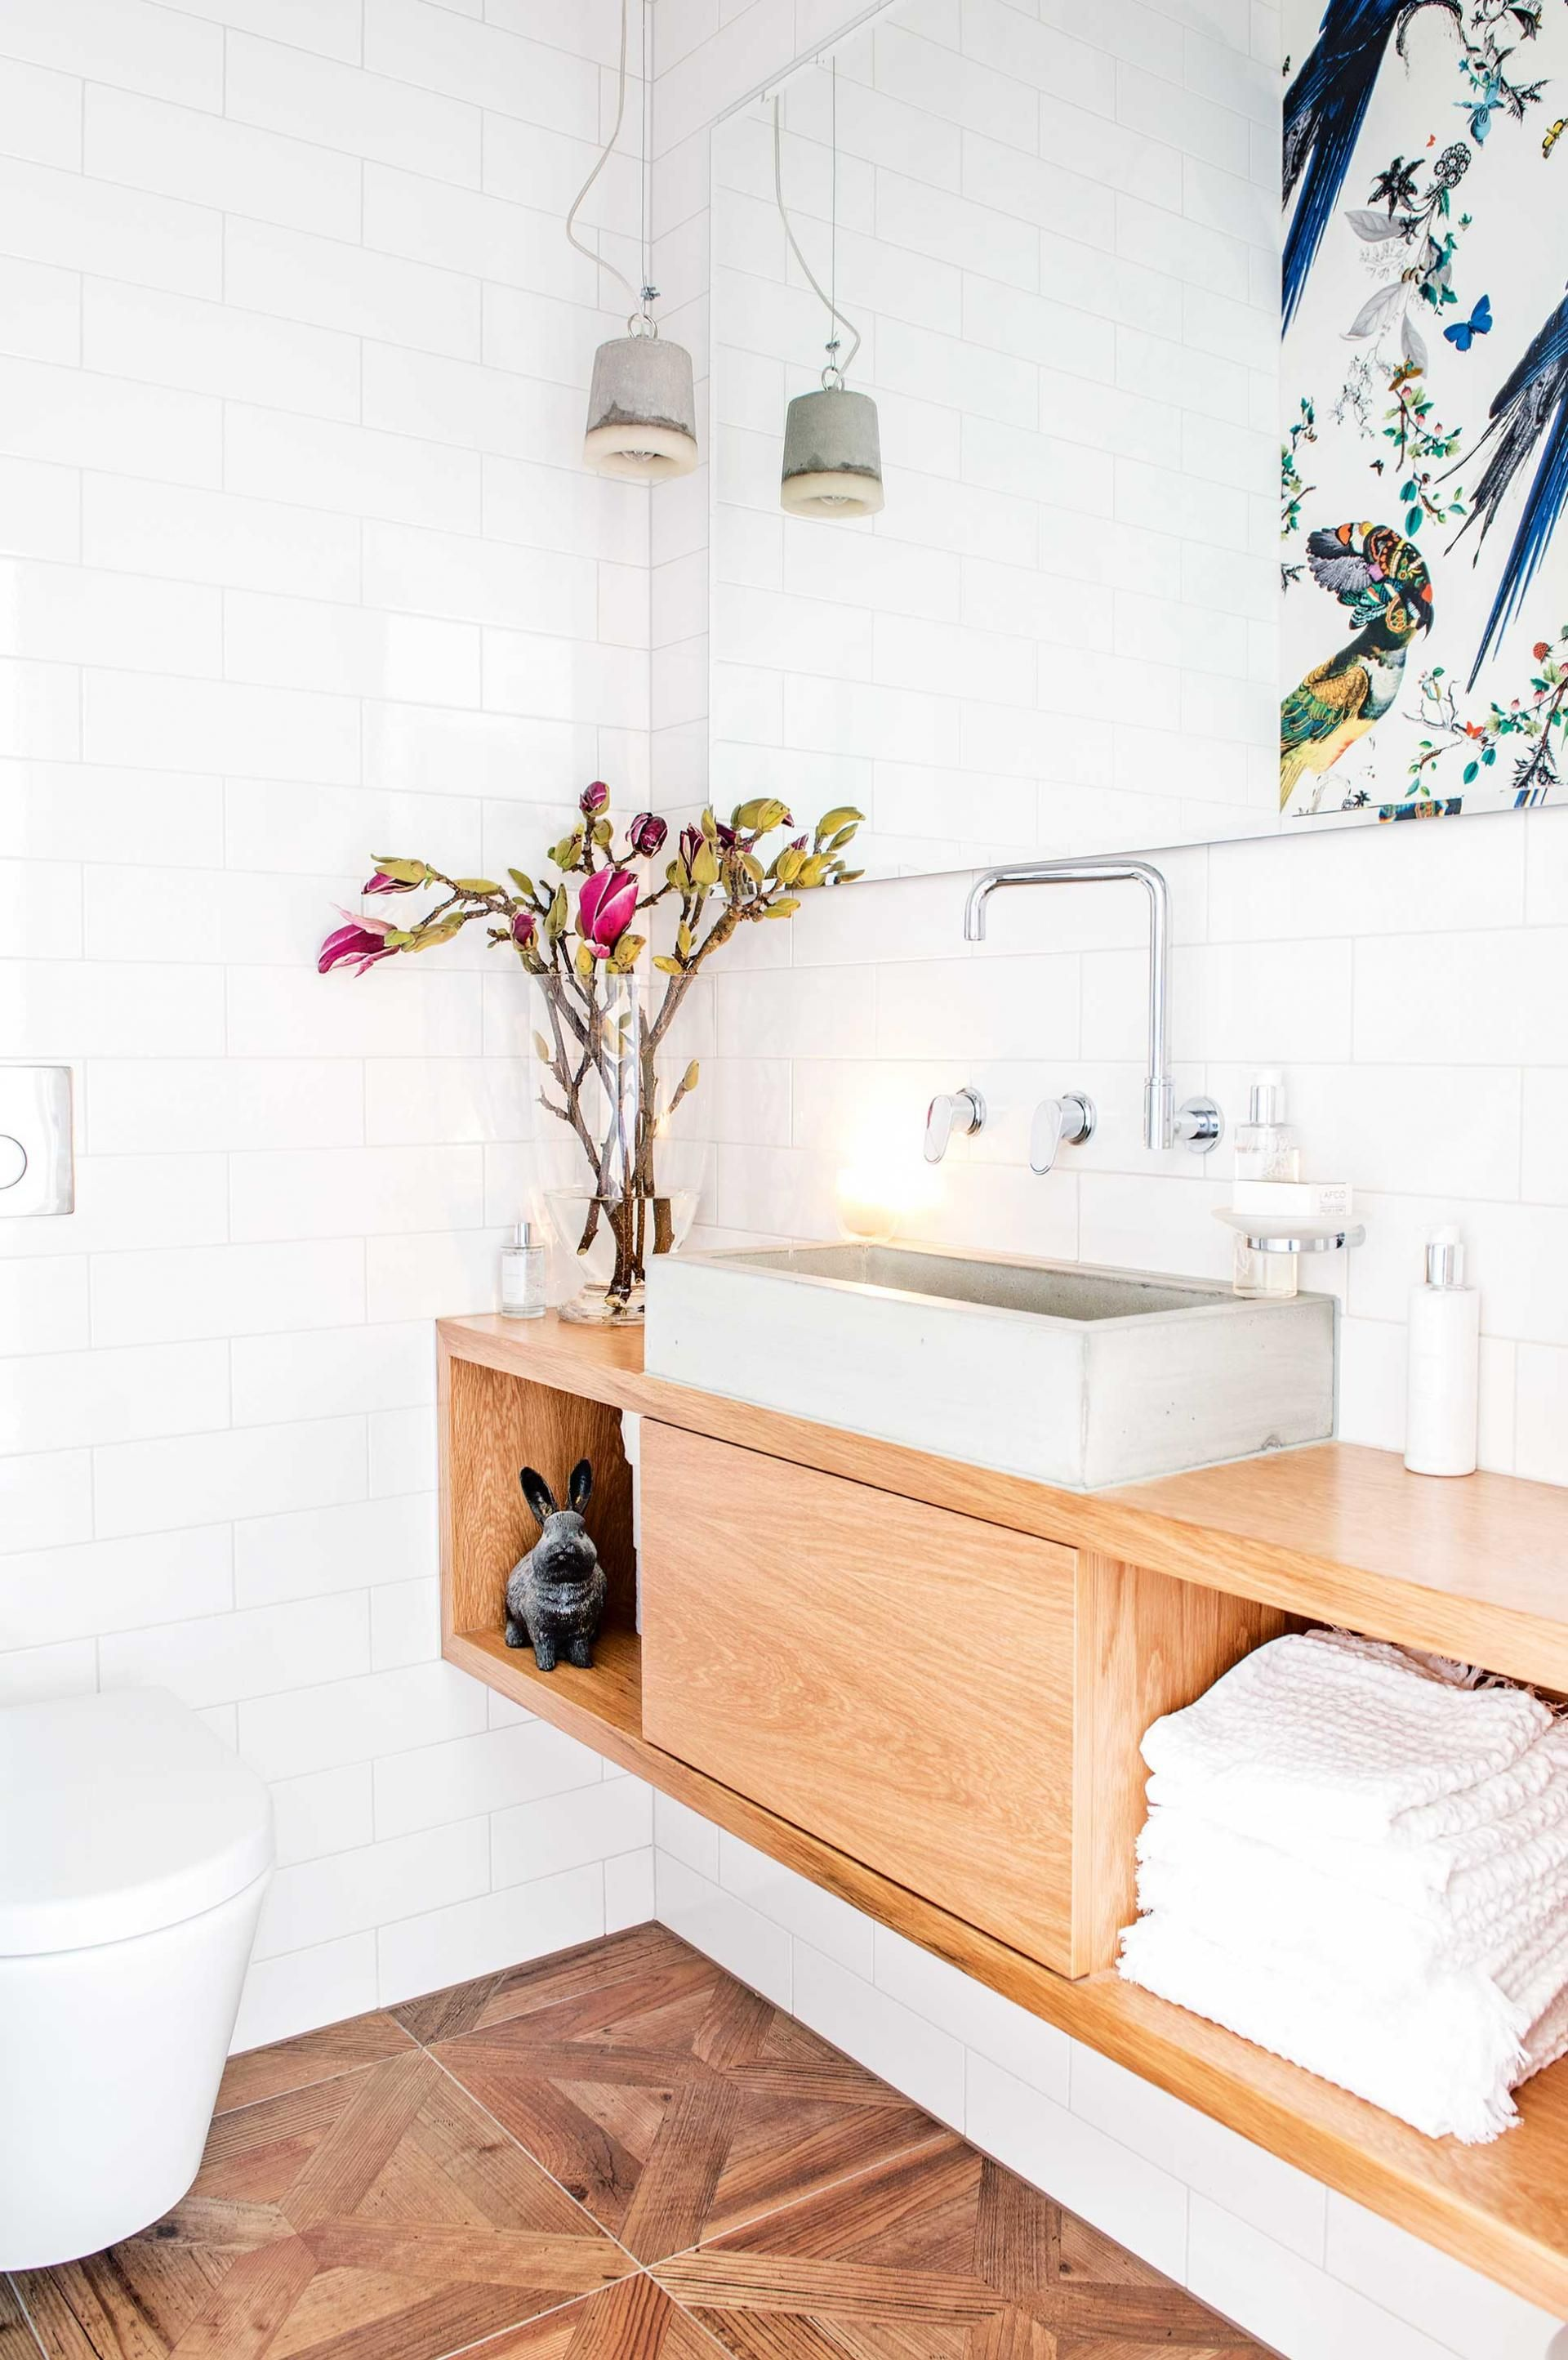 10 clever ideas for creating a statement bathroom. Photography by Anna Robinson. From the March 2016 issue of Inside Out magazine. Available from newsagents, Zinio, http://www.zinio.com, Google Play, https://play.google.com/store/magazines/details/Inside_Out?id=CAowu8qZAQ, Apple's Newsstand, https://itunes.apple.com/au/app/inside-out/id604734331?mt=8ign-mpt=uo%3D4 and Nook.